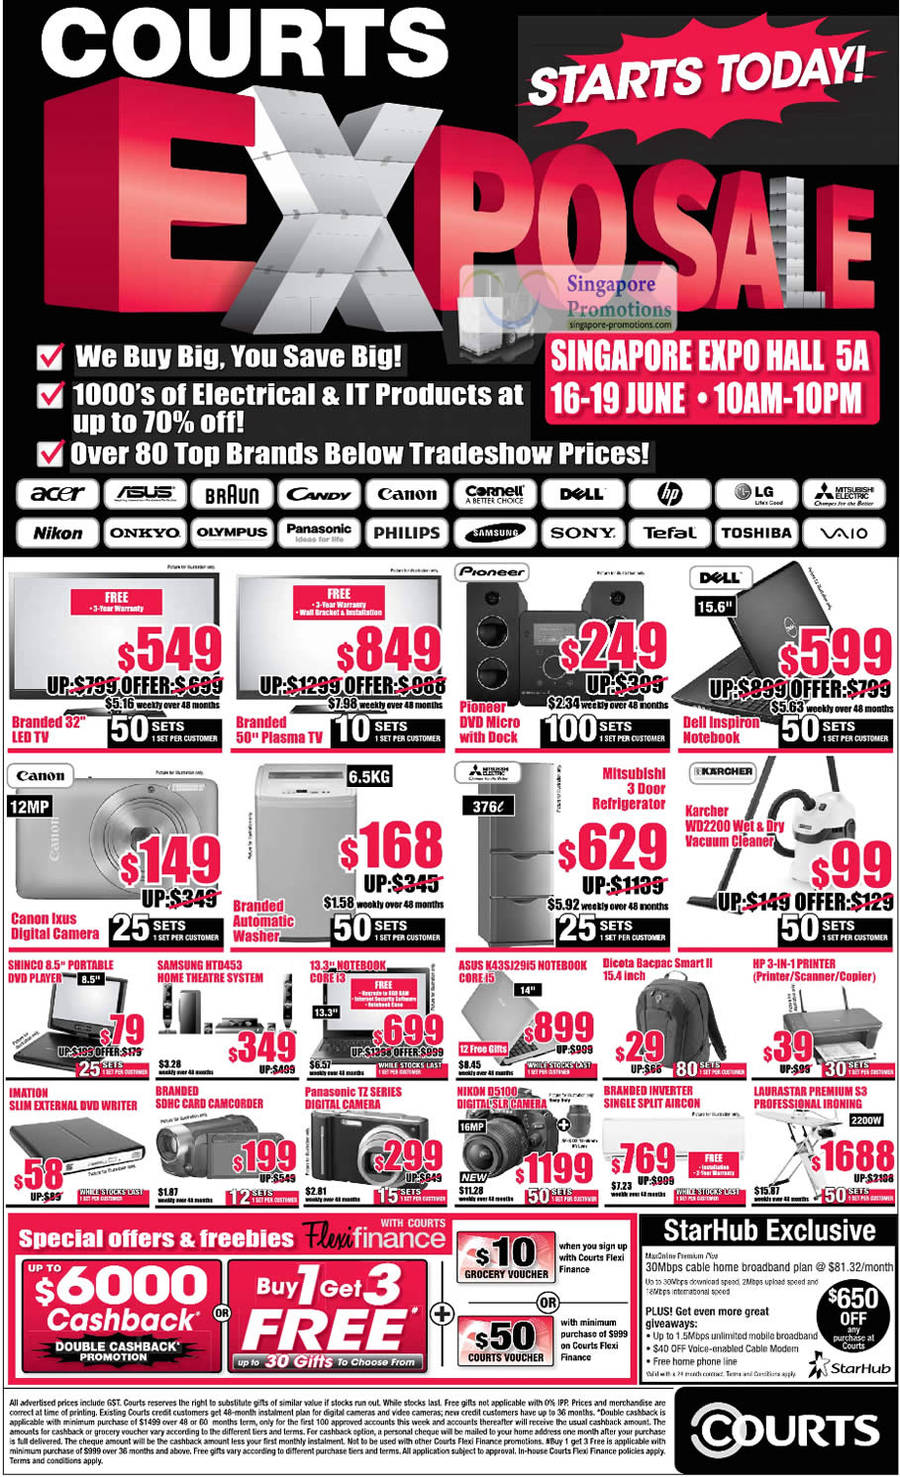 16 Jun TV, LED, Plasma, Pioneer, Dell Inspiron Notebook, Canon Ixus Digital Camera, Washing Machines, Karcher WD2200, Samsung HTD463, ASUS K43SJ29i5, Nikon D5100